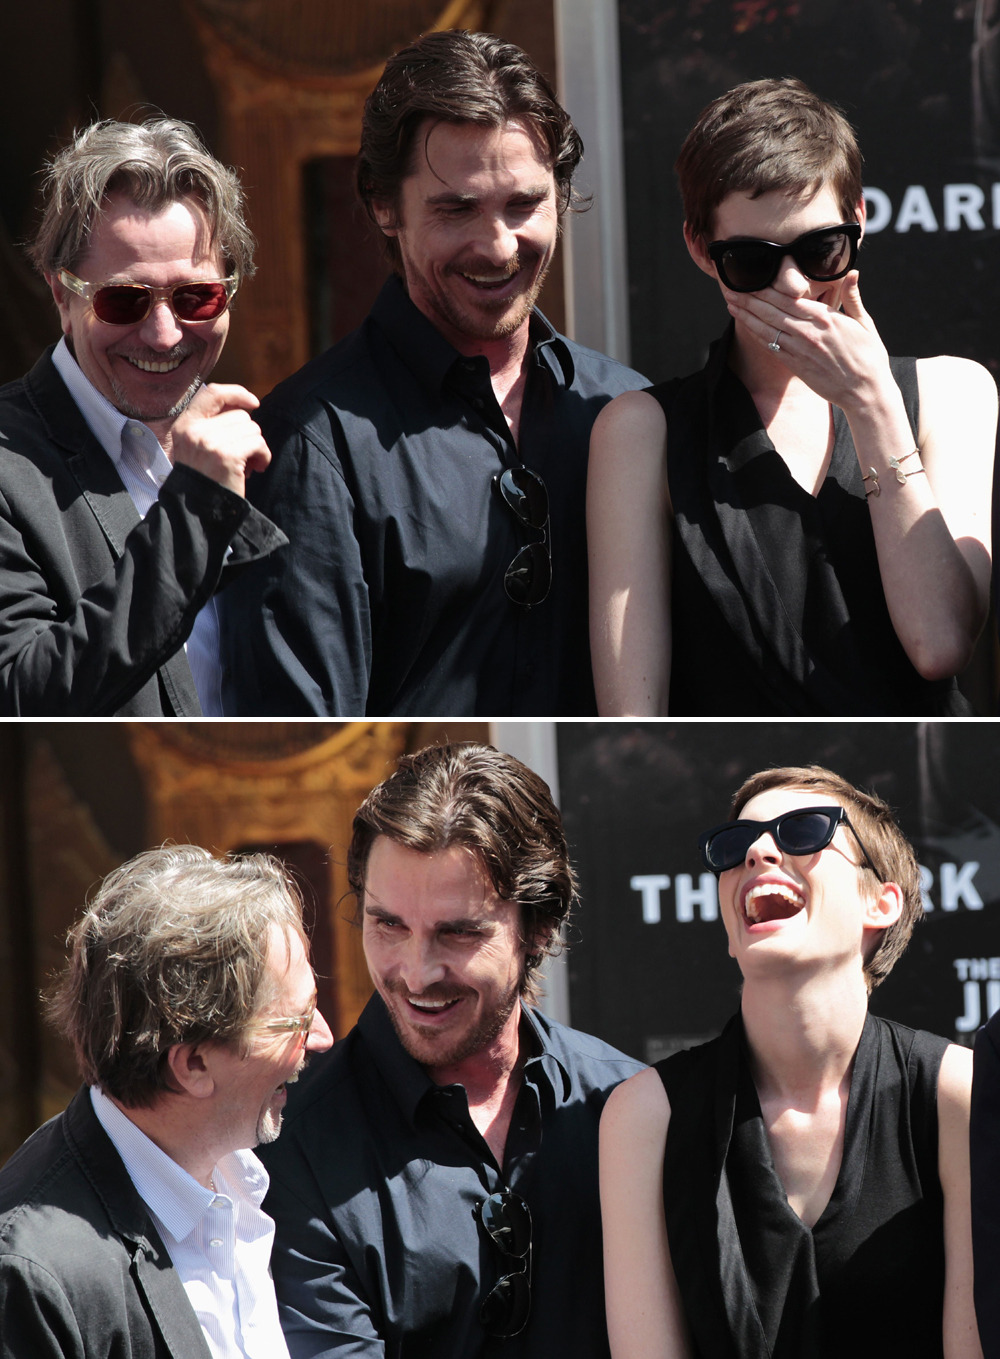 bohemea:  Gary Oldman, Christian Bale & Anne Hathaway at Christopher Nolan's hand print ceremony, July 7th 2012 WHAT'RE YOU GUYS LAUGHING AT? TELL ME!